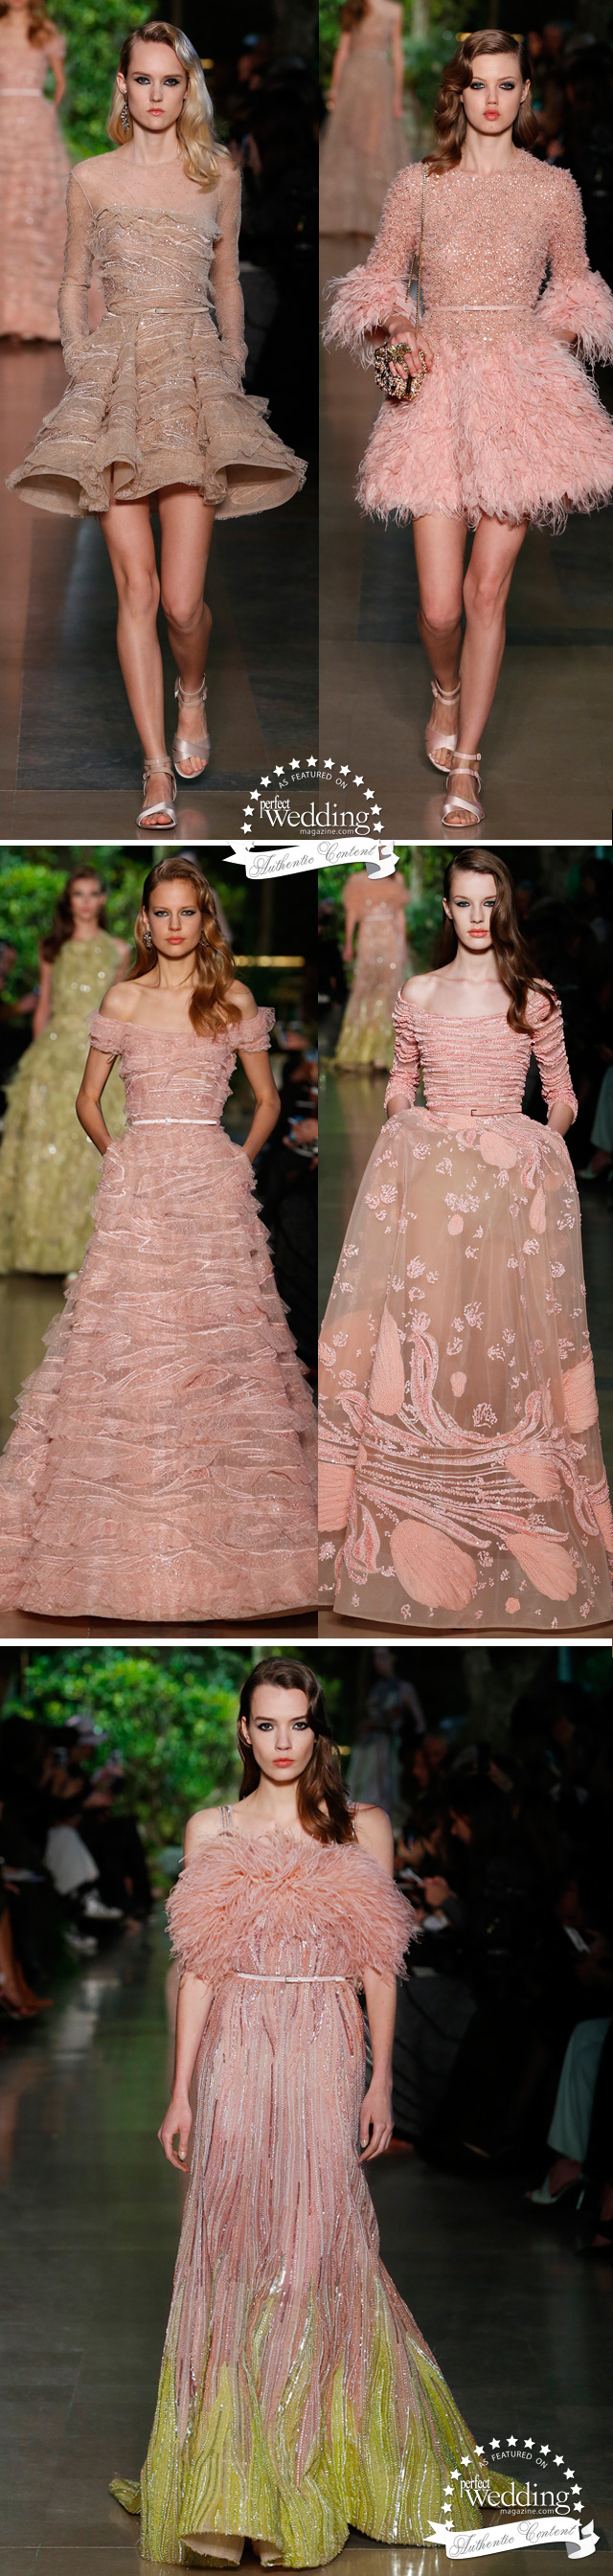 Elie Saab, Elie Saab Haute Couture, Elie Saab Spring Summer 2015 Haute Couture, Perfect Wedding Magazine